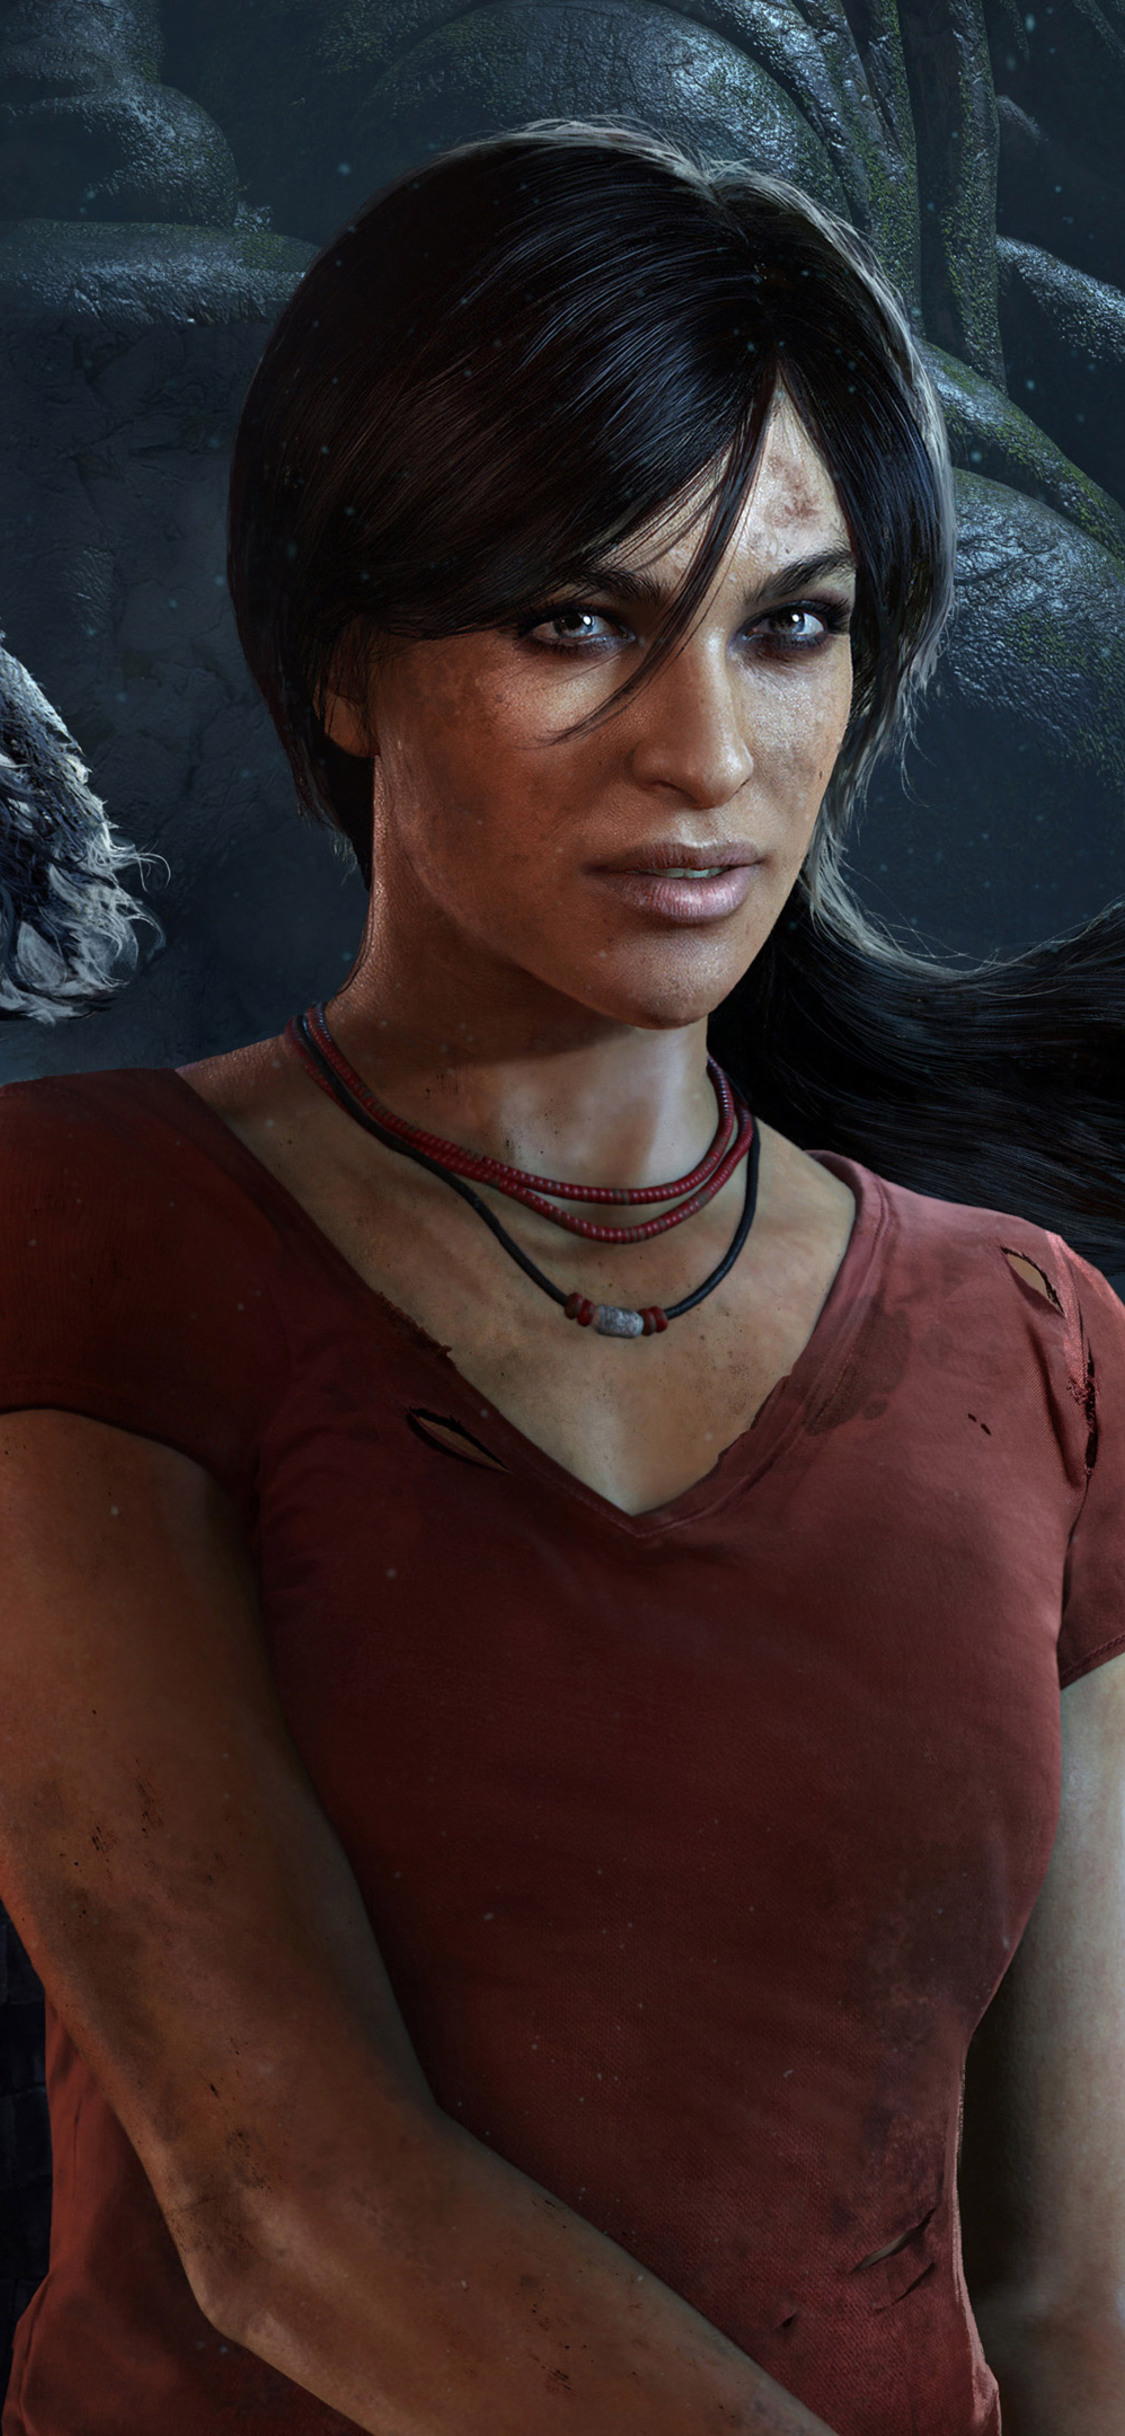 1125x2436 Chloe And Nadine Uncharted The Lost Legacy Iphone Xs